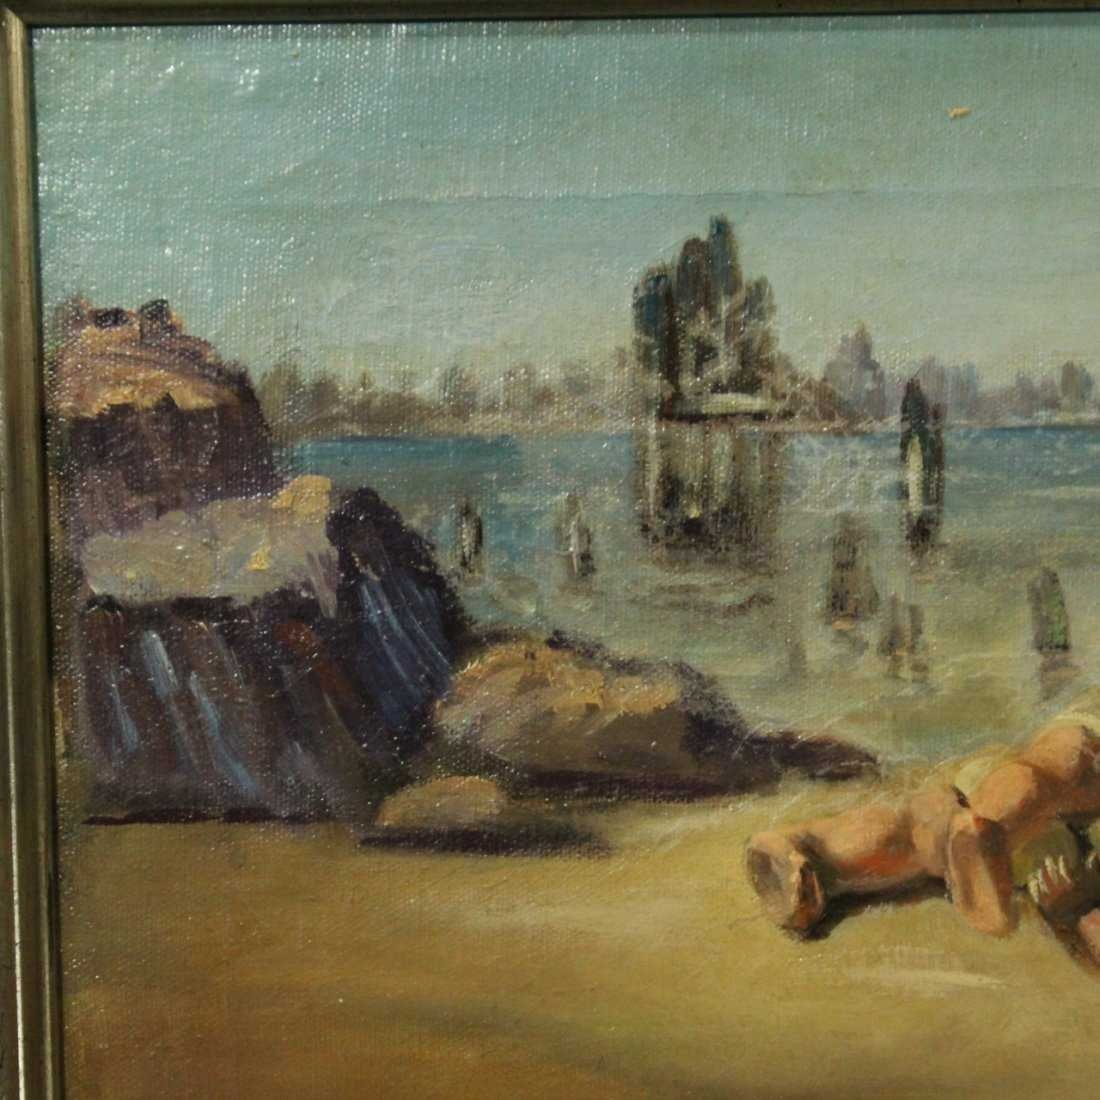 WALTER MURCH, Oil/C SURREAL INFANT ON SHORE - 2